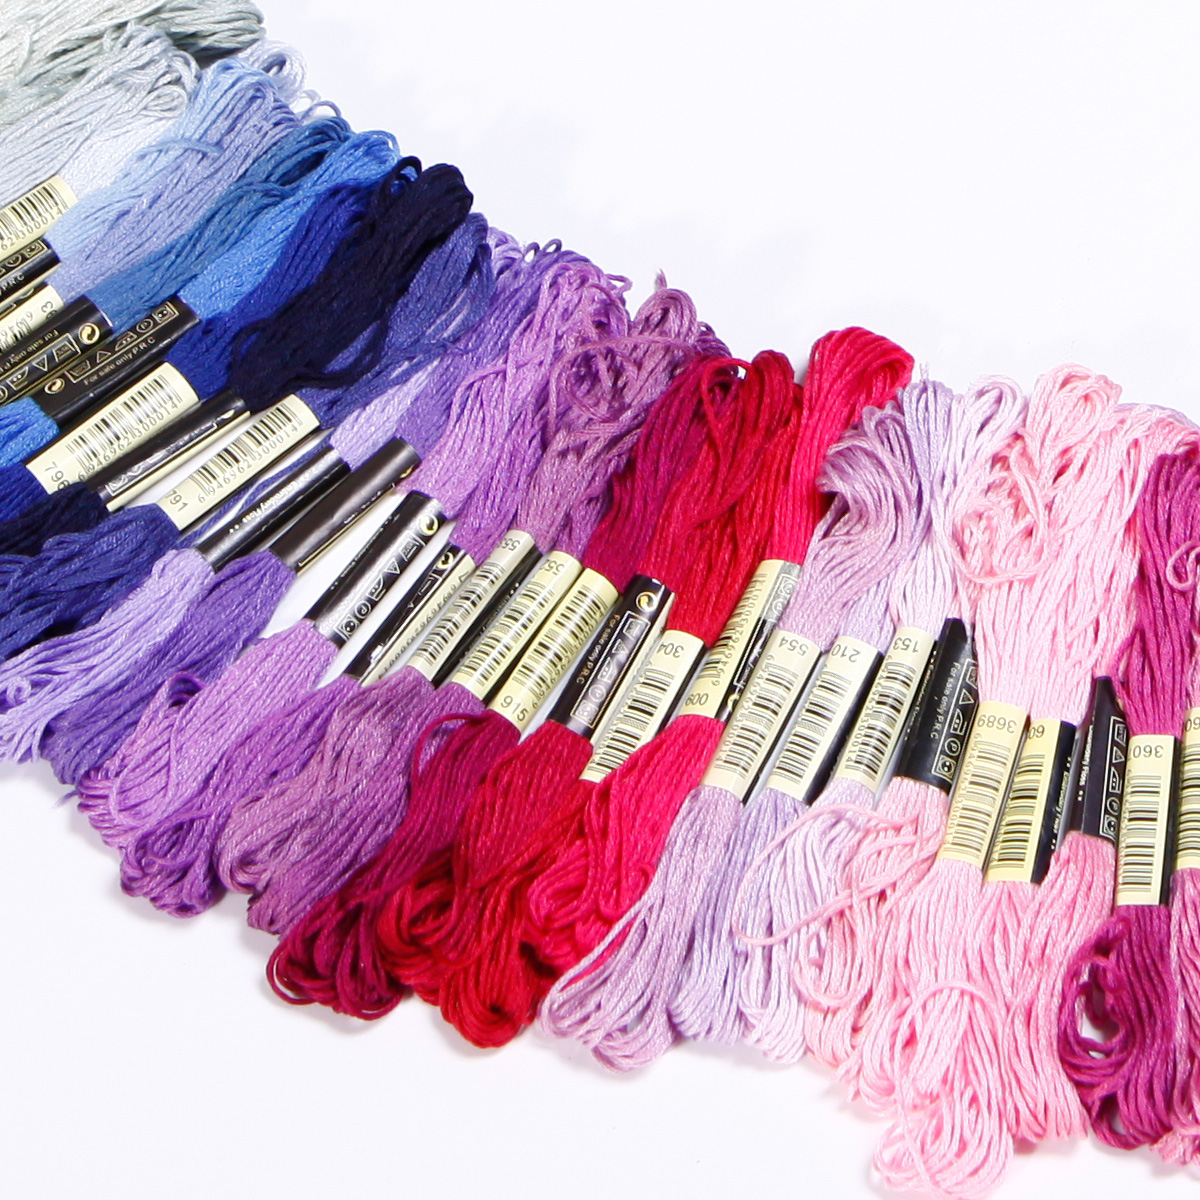 50-300-Color-Cross-Stitch-Thread-Embroidery-Floss-Sewing-Skeins-100-Cotton-Line thumbnail 11